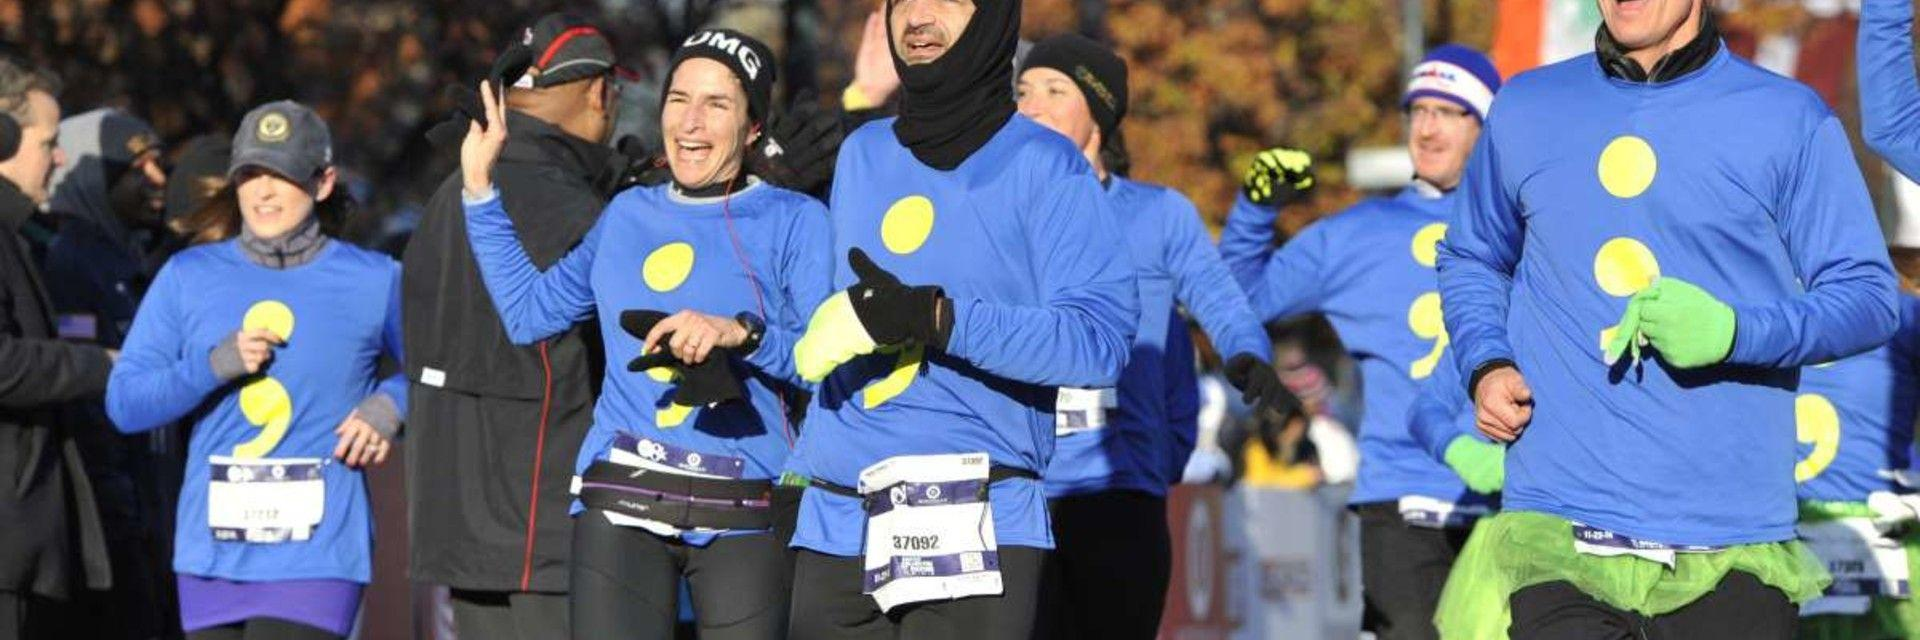 Running with colon cancer, sports medicine doctor takes on t...